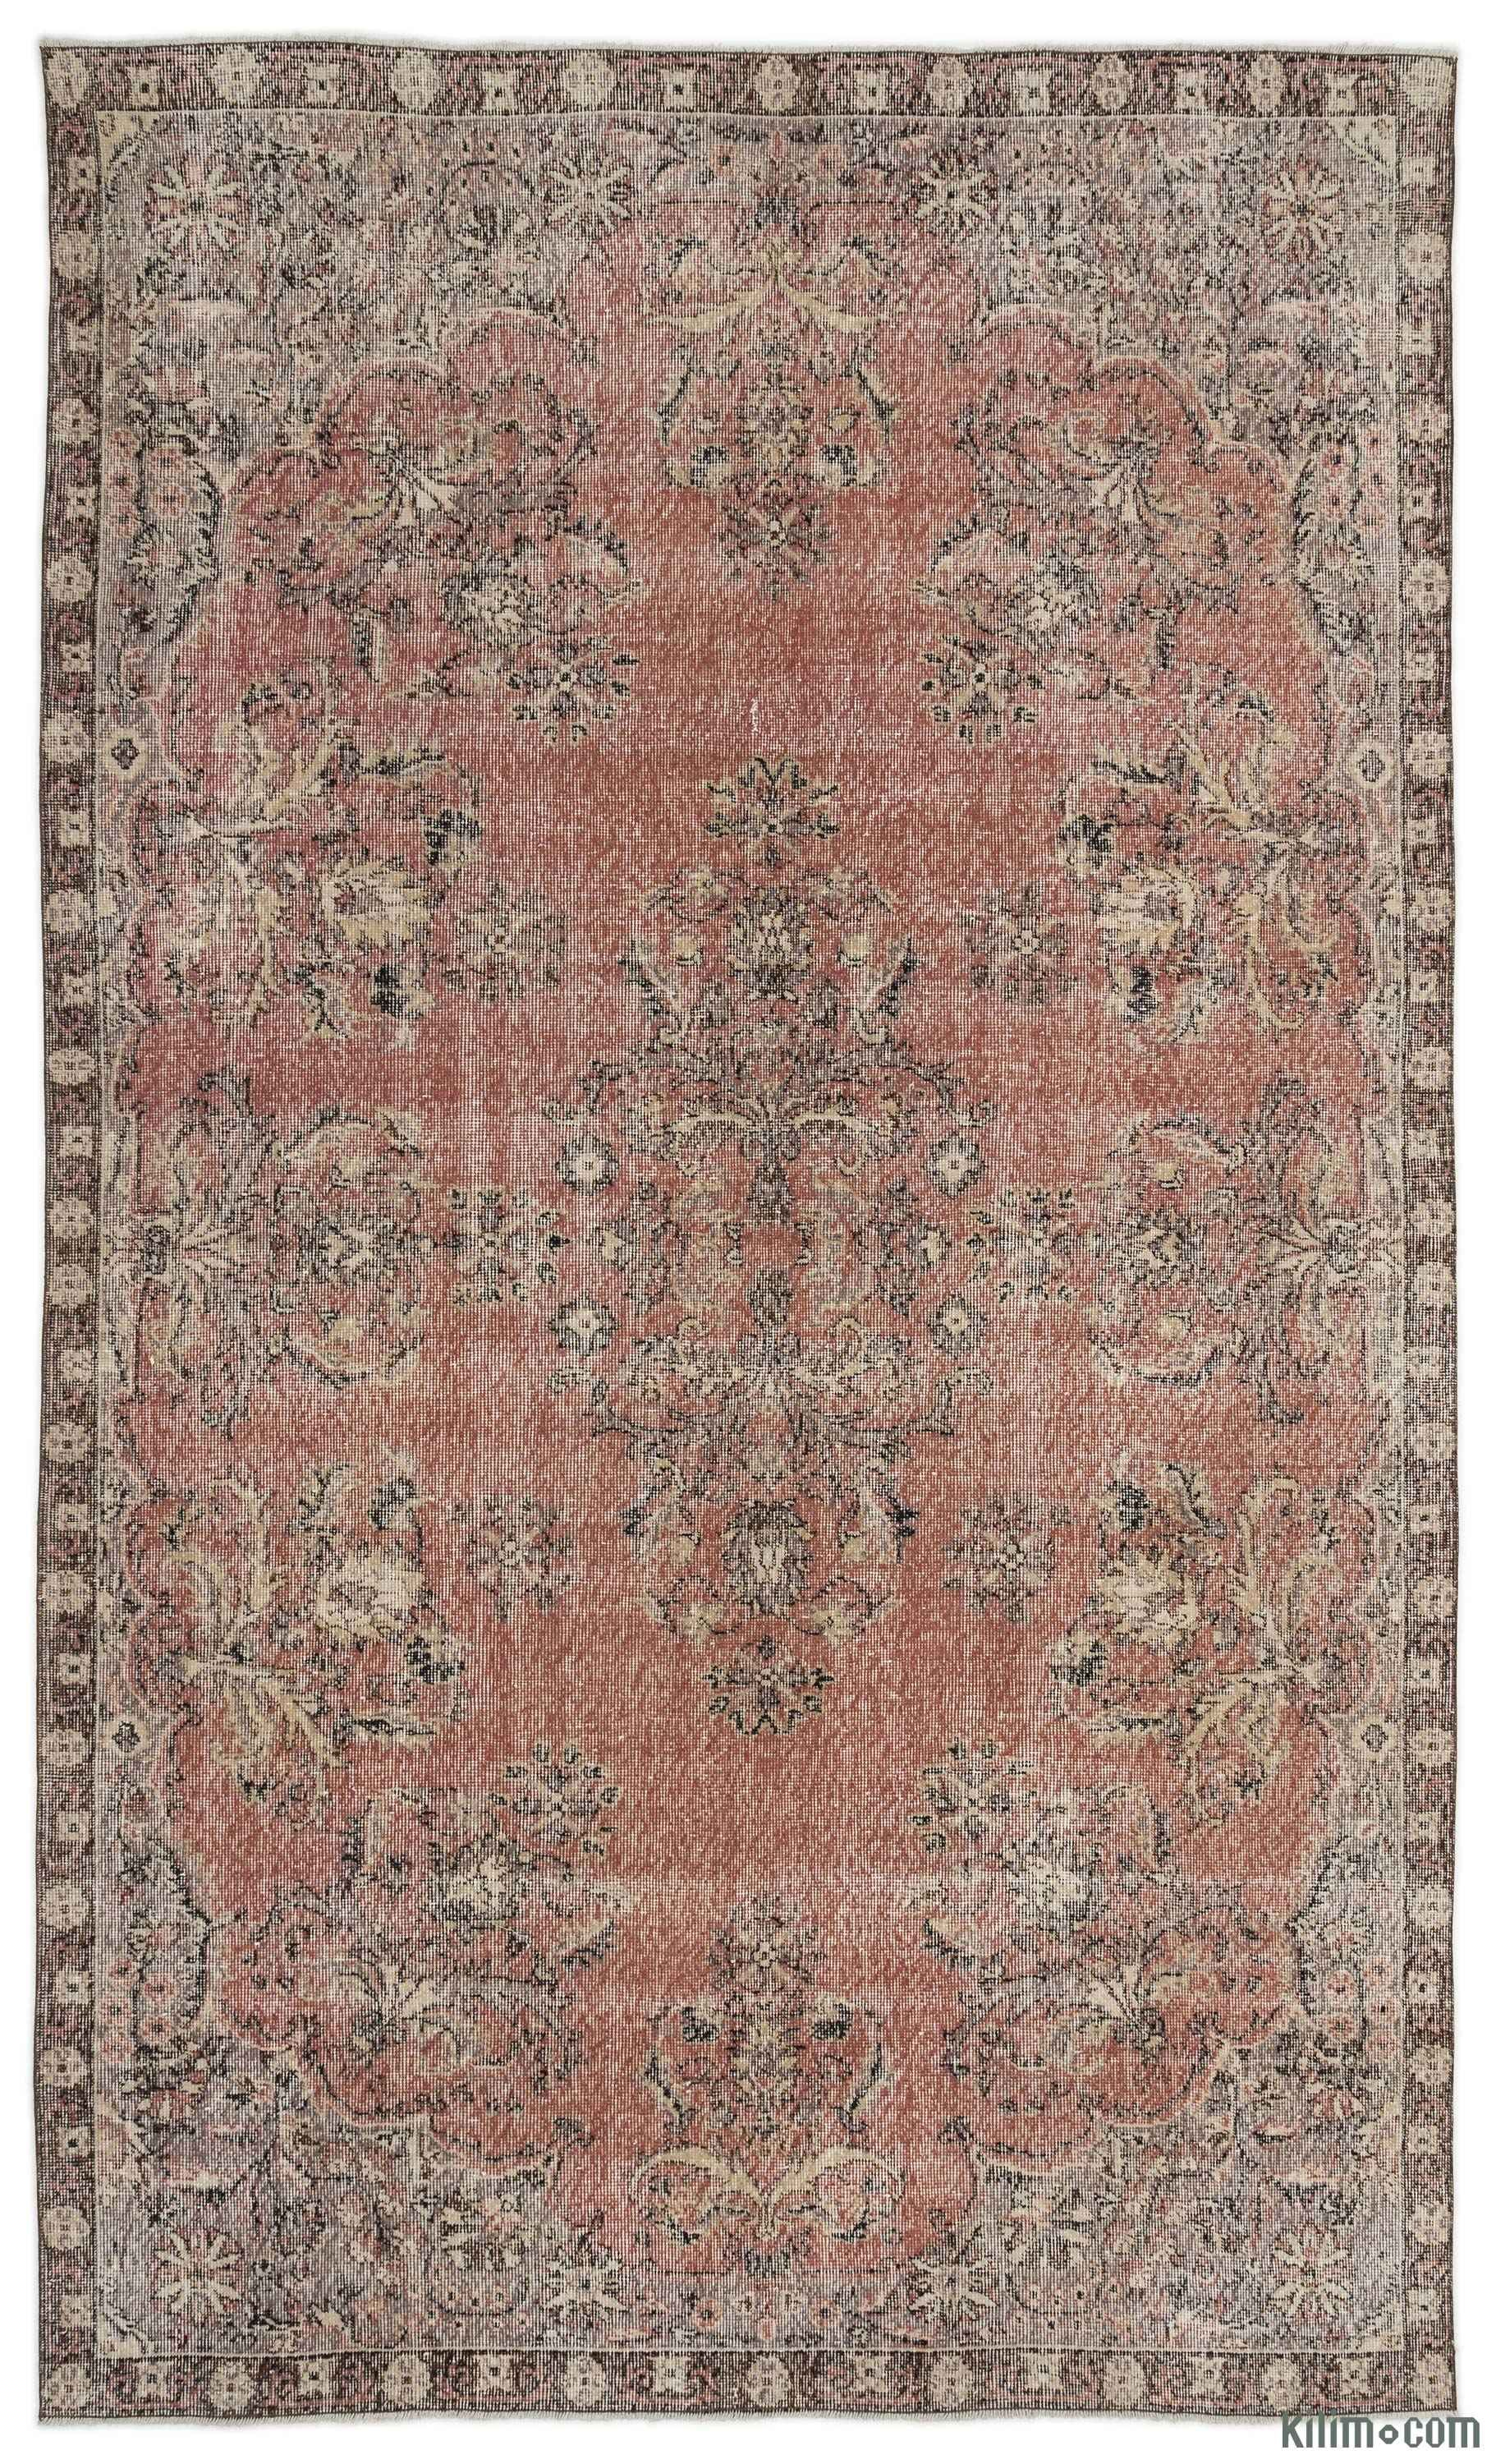 Turkish Vintage Area Rug 6 5 X 10 9 77 In X 129 In